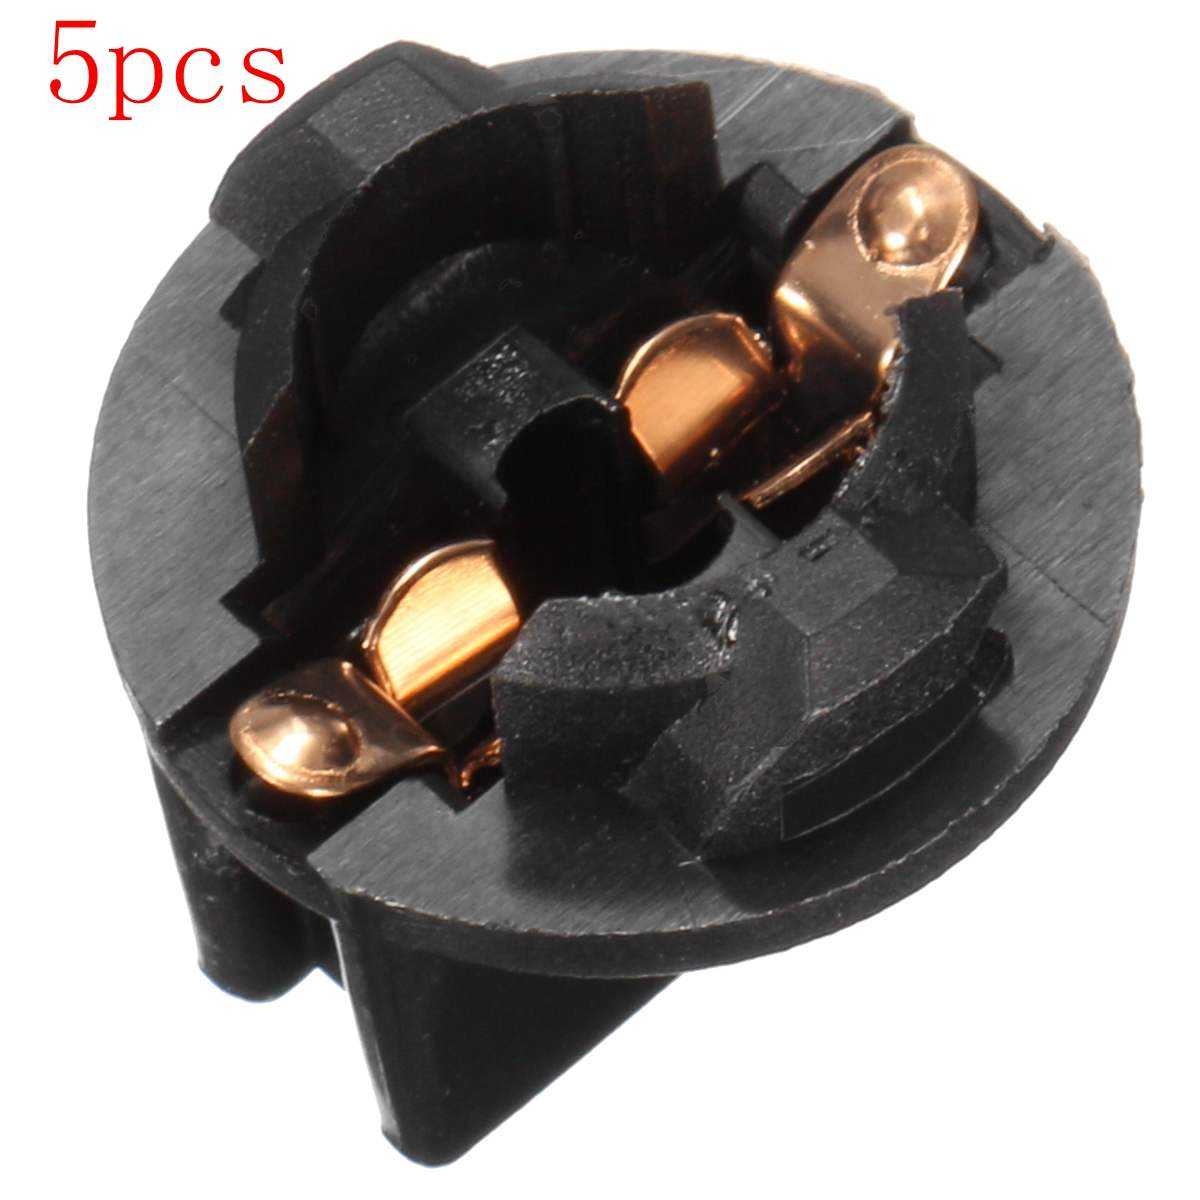 5pcs Black T10 Twist-in interior Car Light Socket Twist Lock Plug Instrument Dashboard Panel Light Bulb 192 194 168 2595pcs Black T10 Twist-in interior Car Light Socket Twist Lock Plug Instrument Dashboard Panel Light Bulb 192 194 168 259